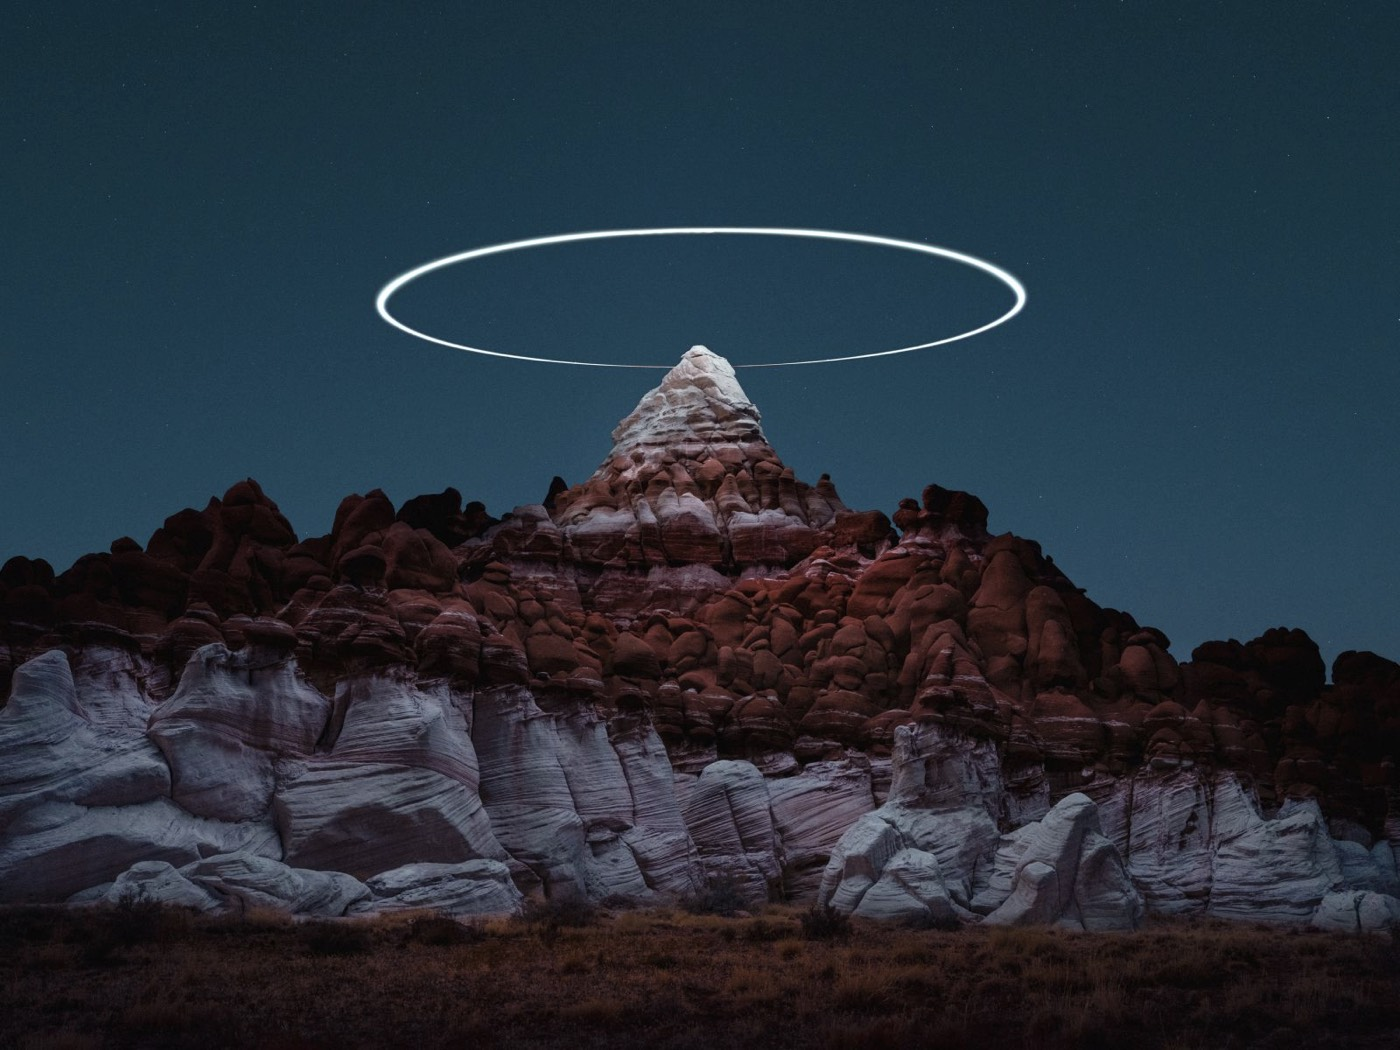 Mountains Haloed by Drone Light 6